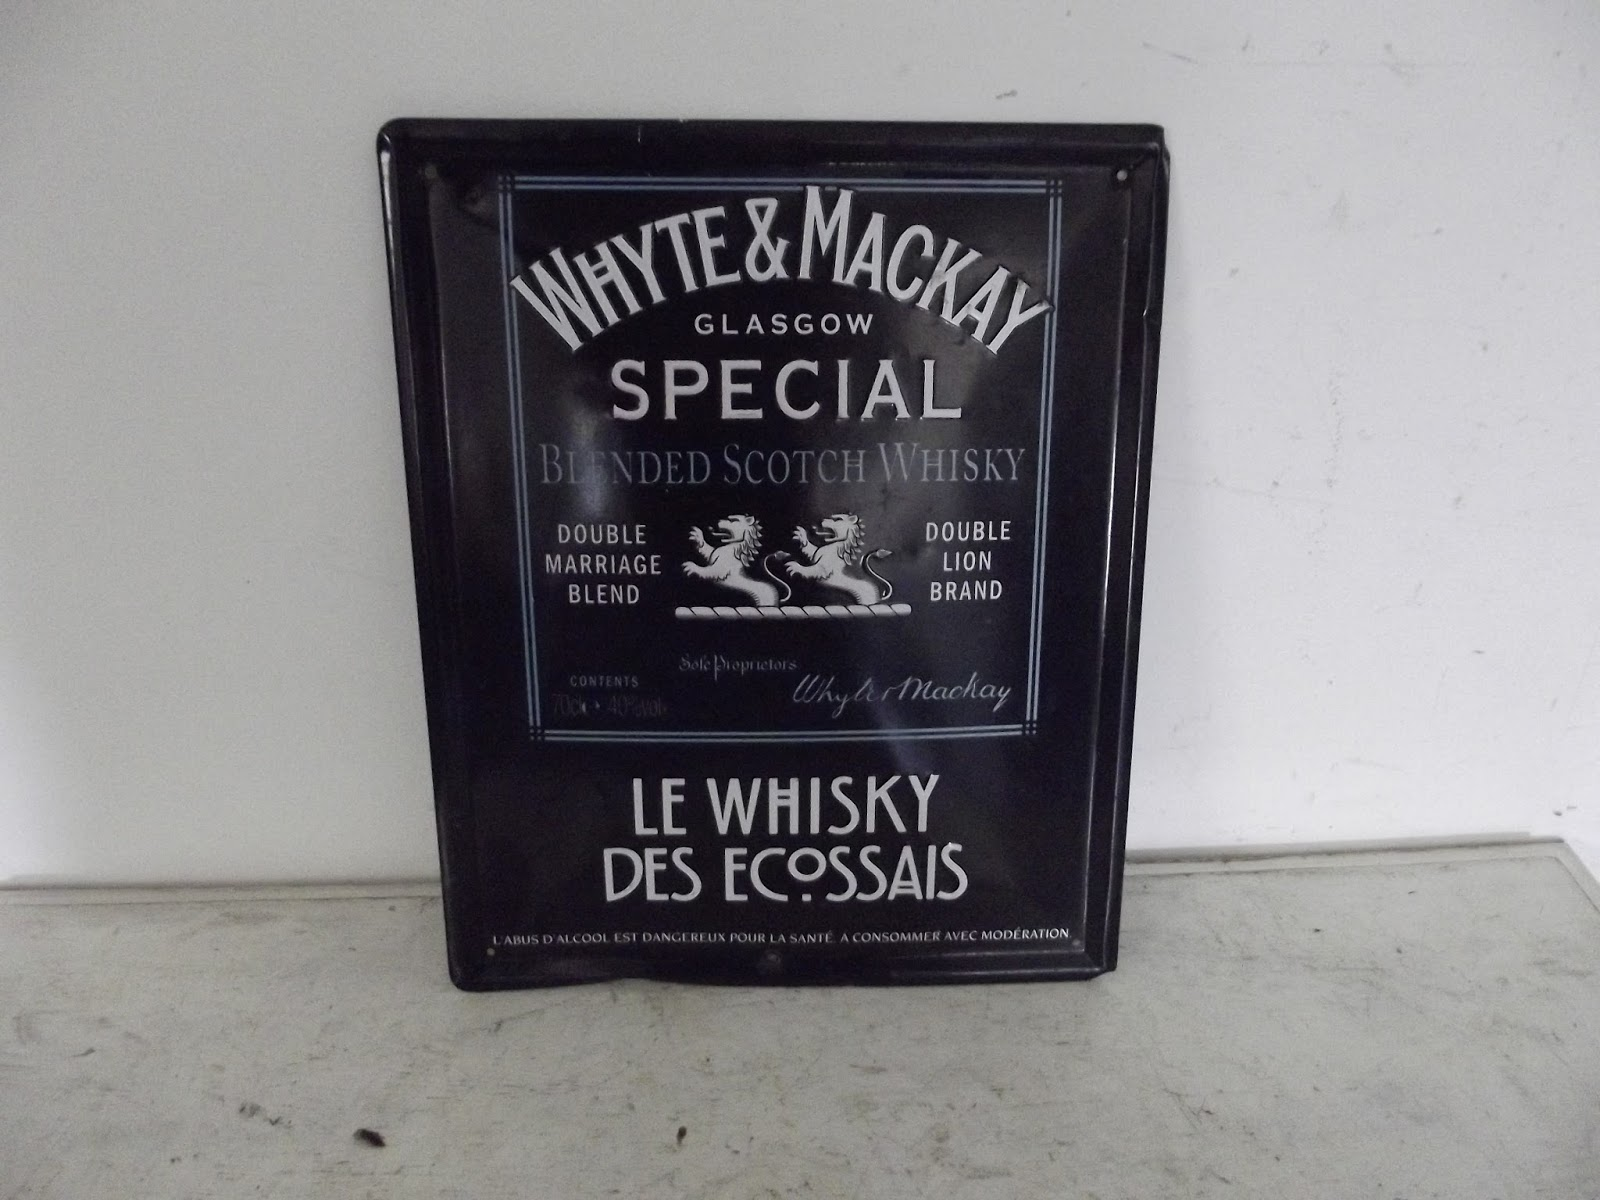 ancienne plaque publicitaire tole peinte le whisky dess ecossais white. Black Bedroom Furniture Sets. Home Design Ideas